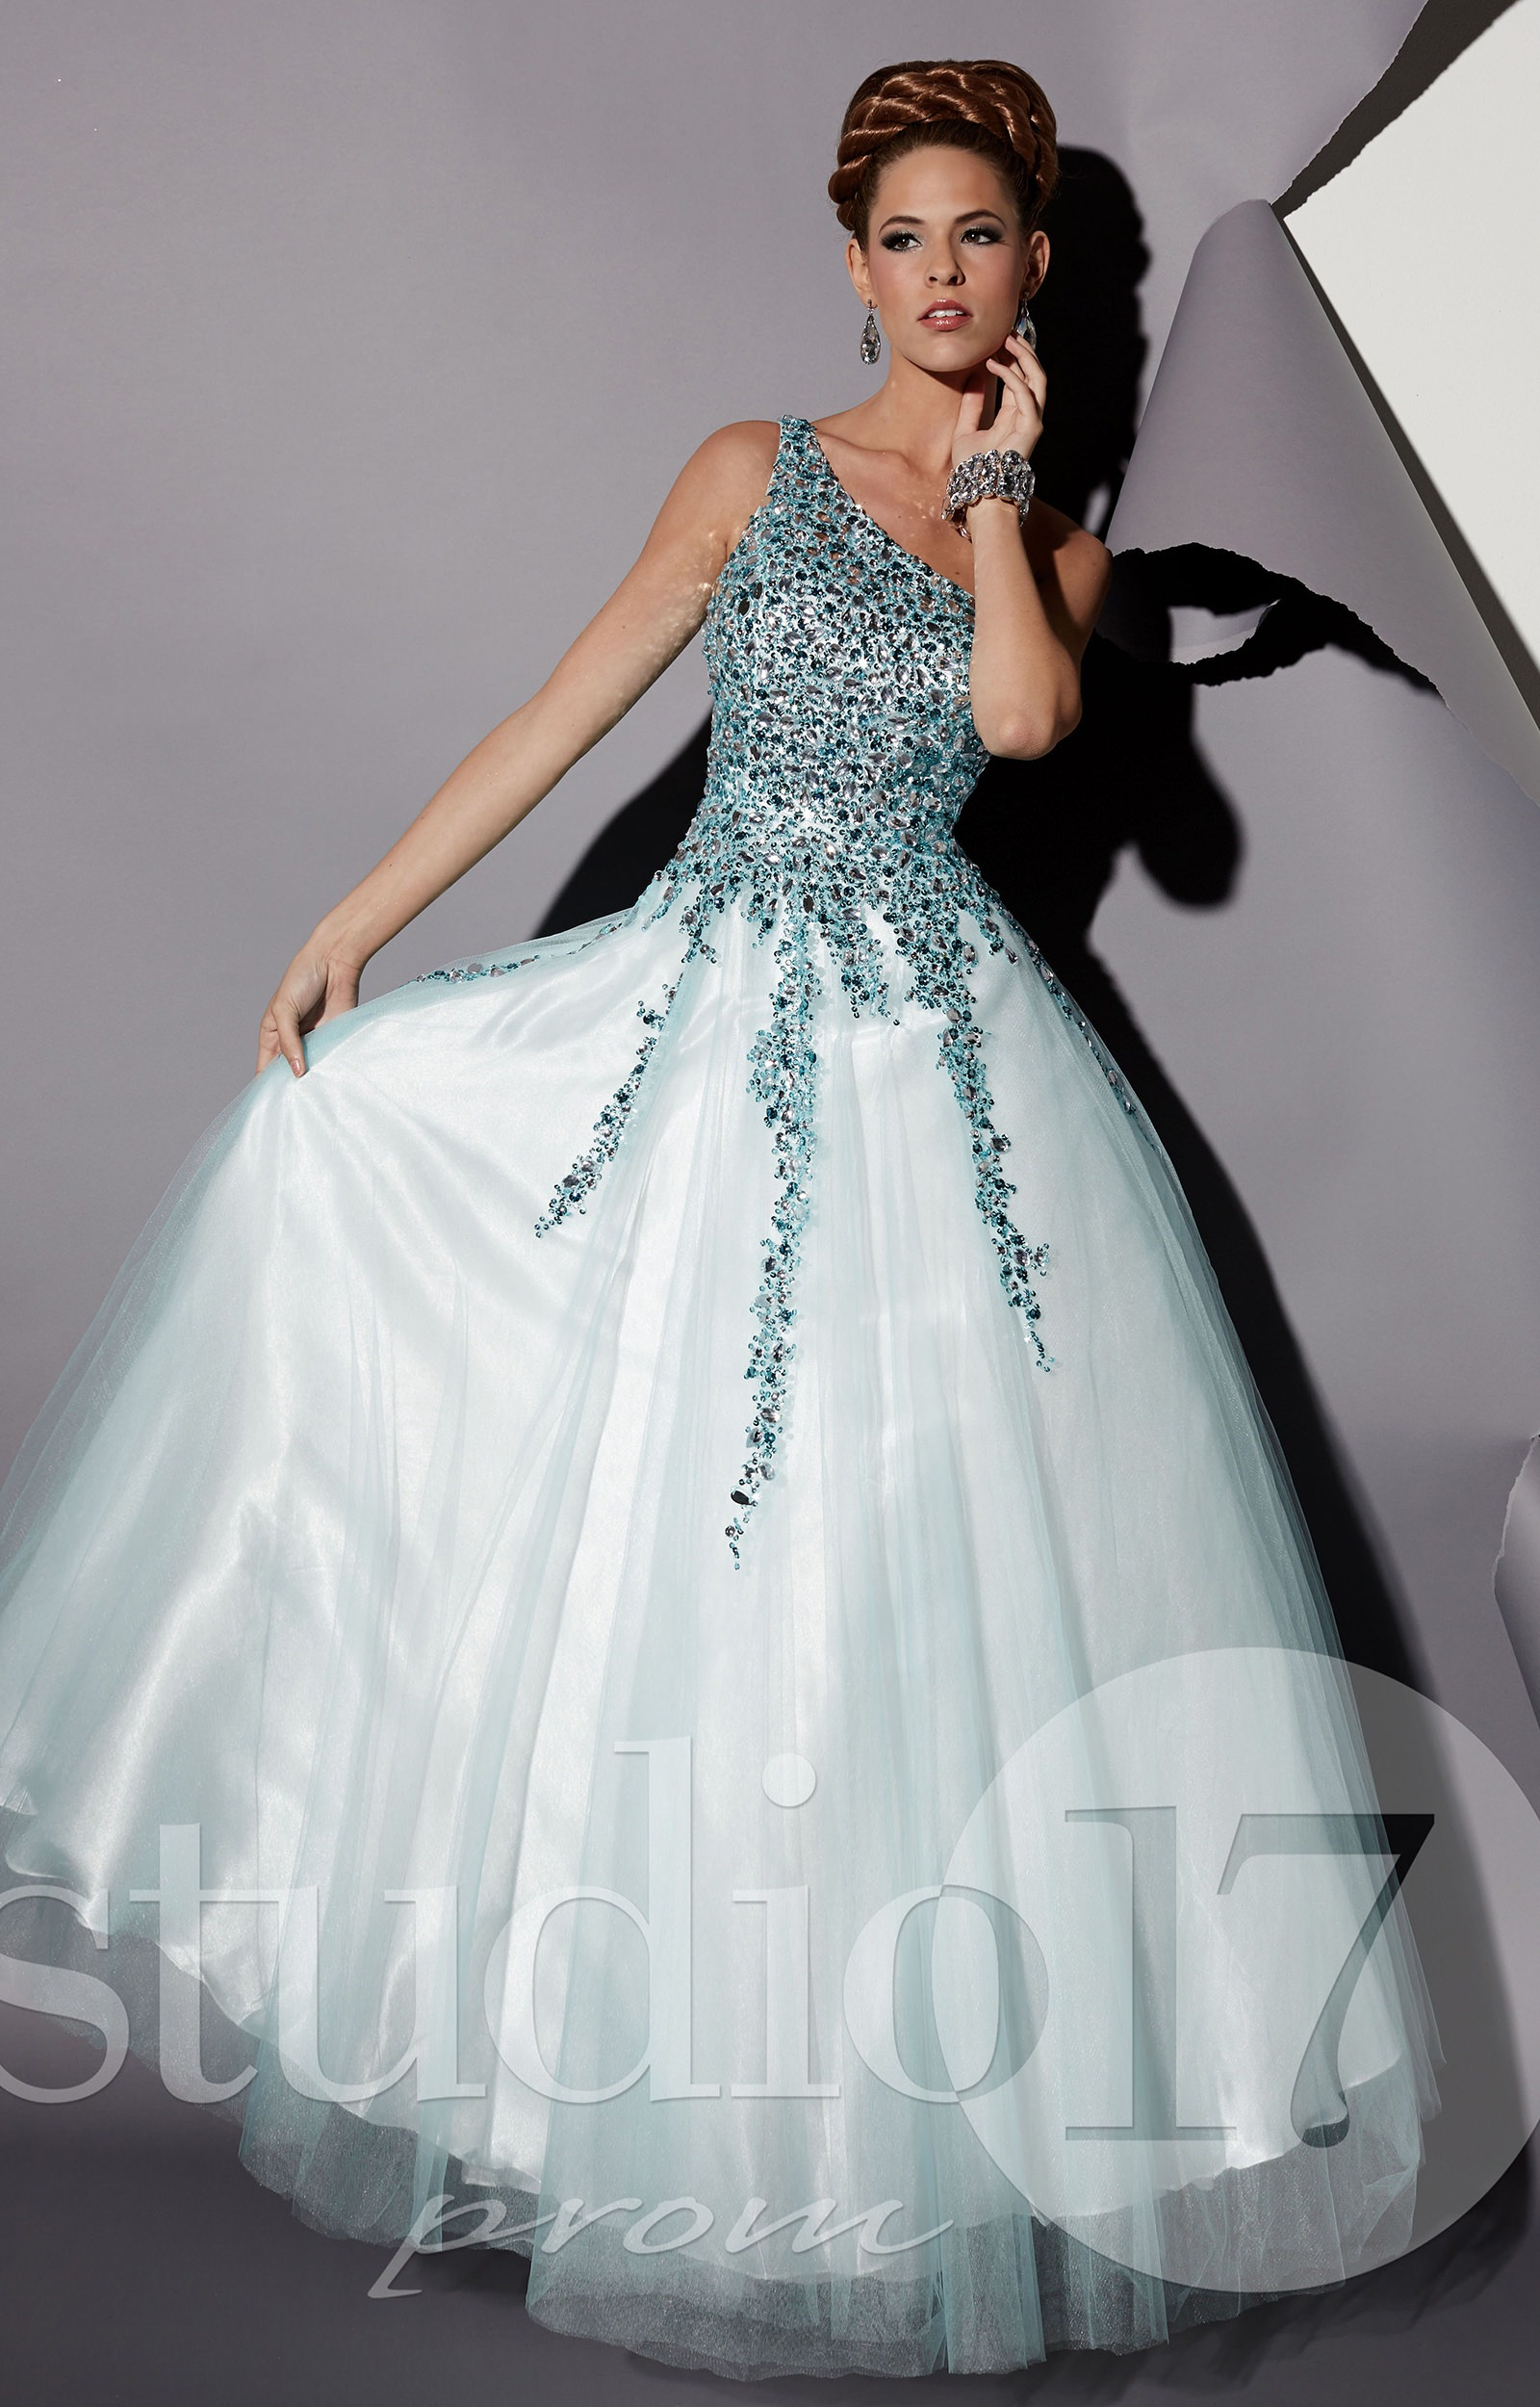 Studio 17 12454 - Into the Woods Gown Prom Dress